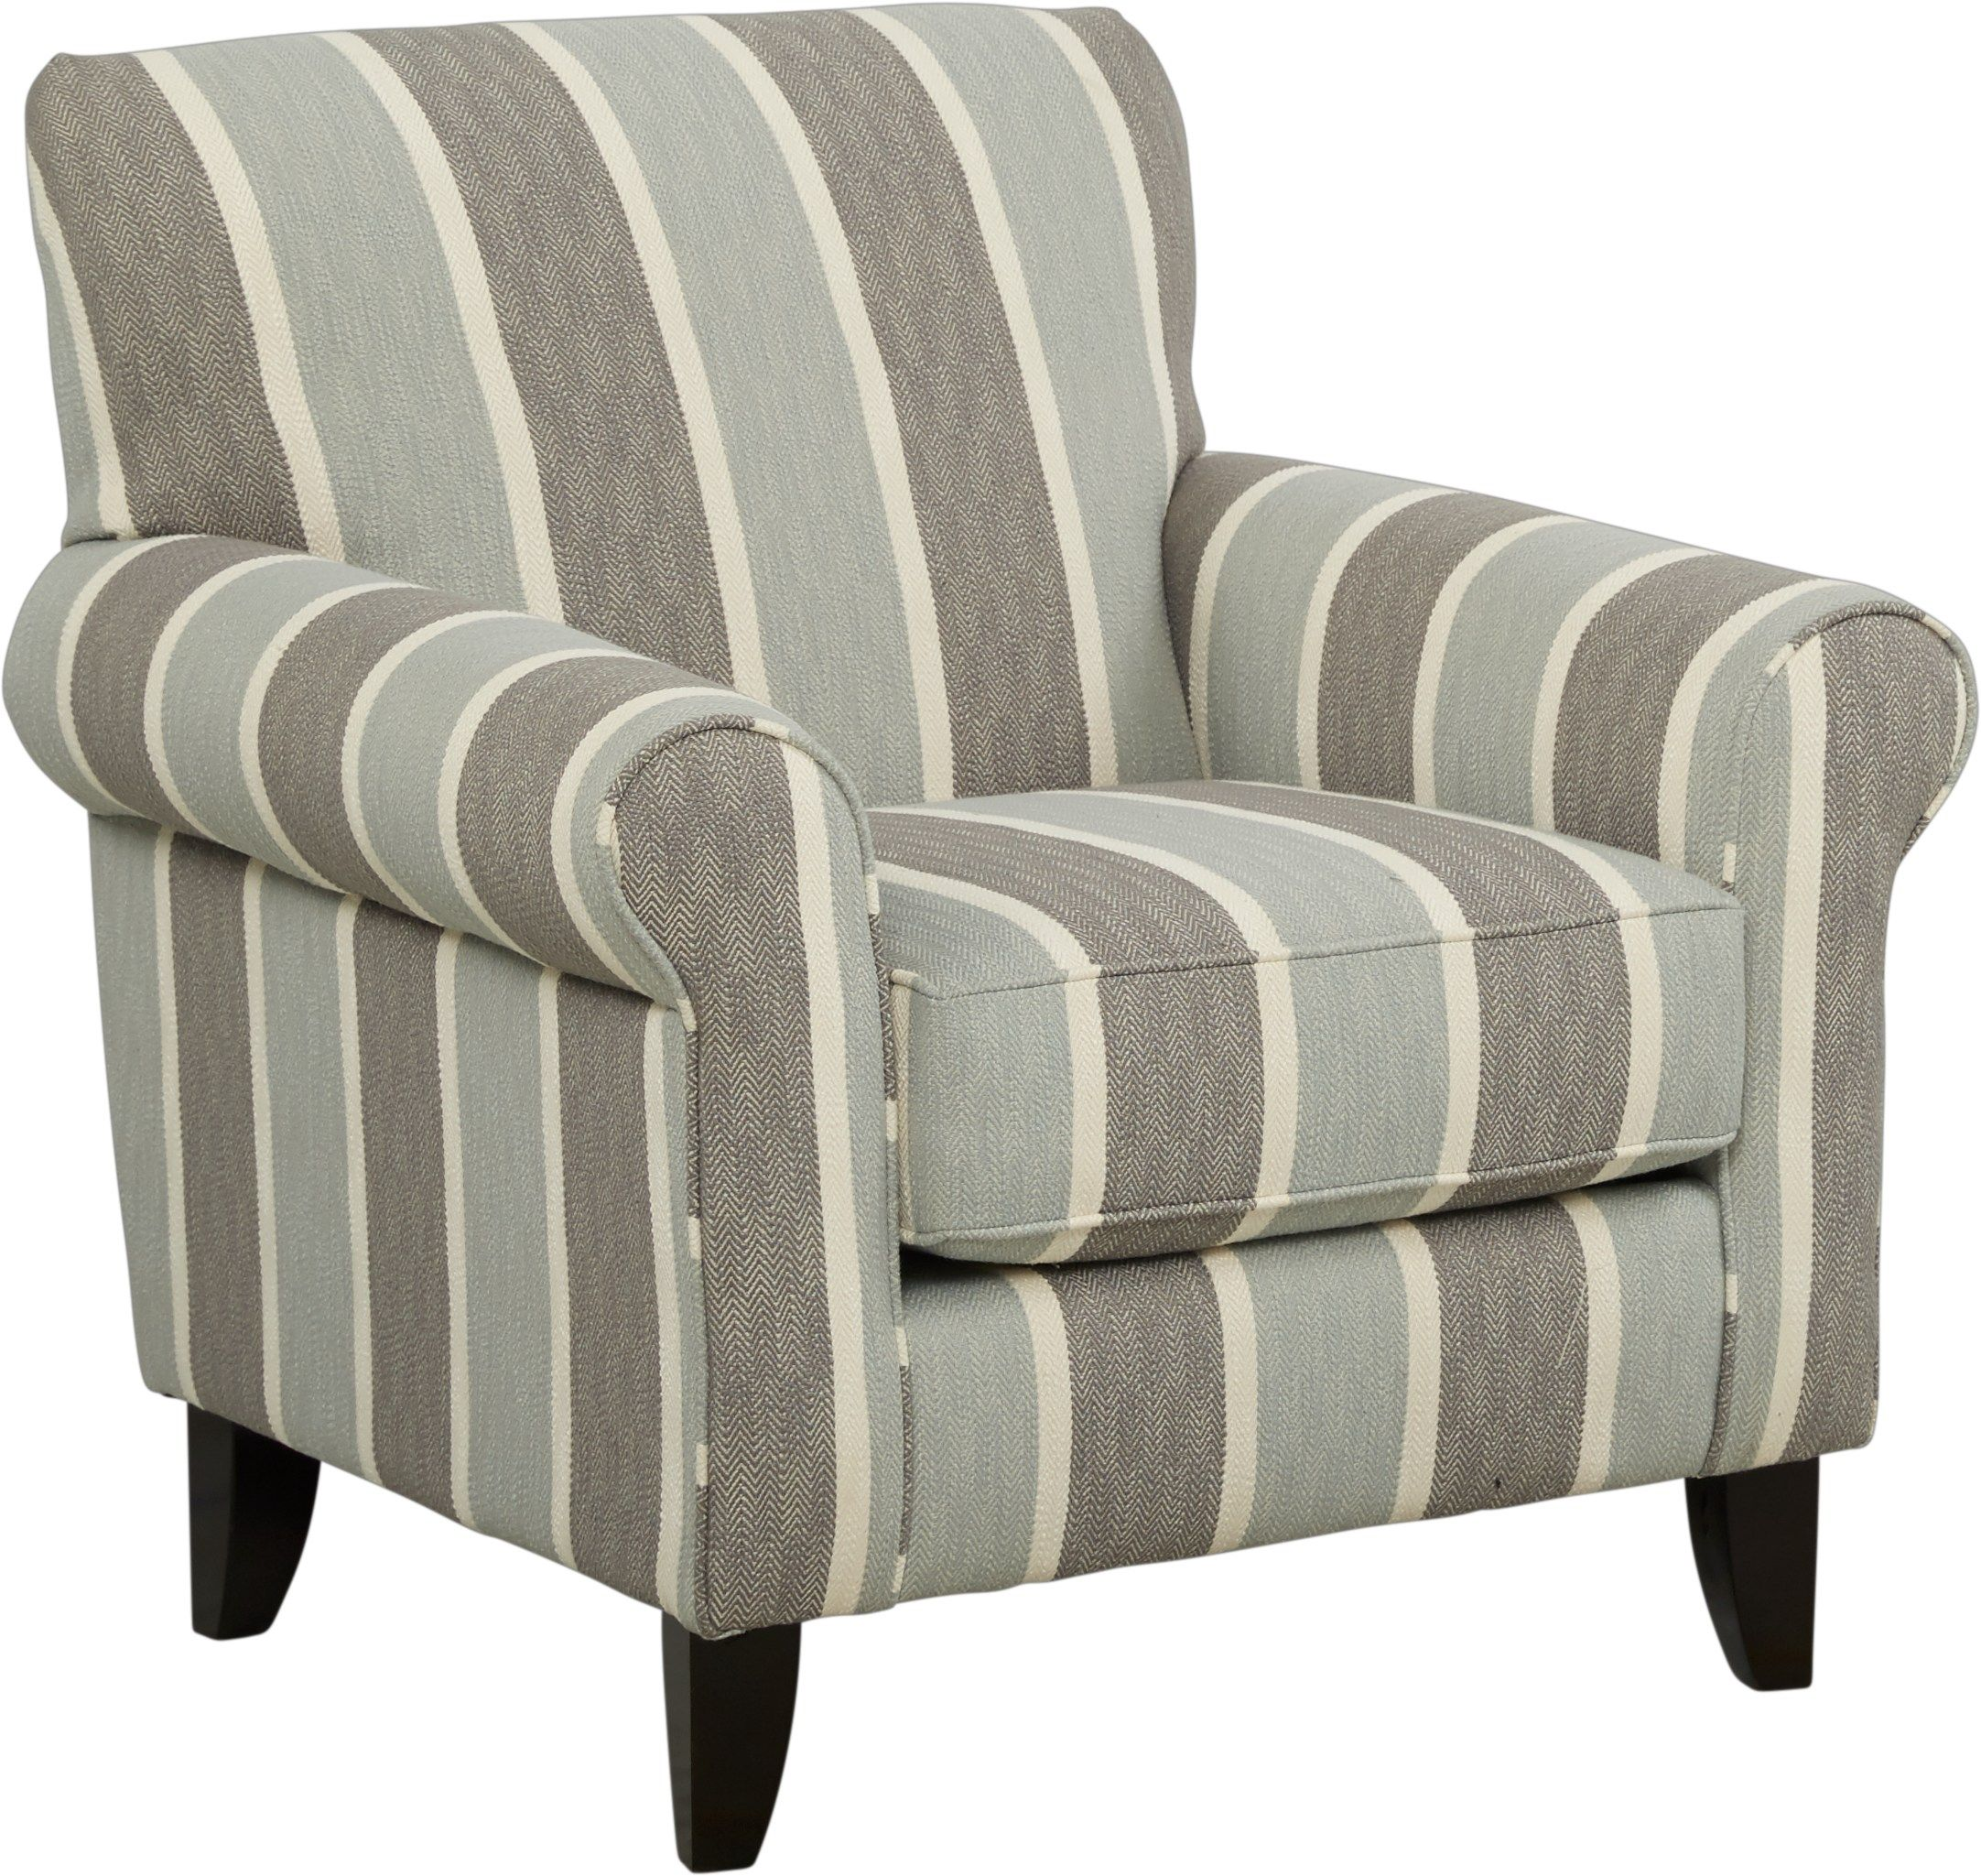 Pennington Blue Striped Accent Chair Stripe Accent Chair Accent